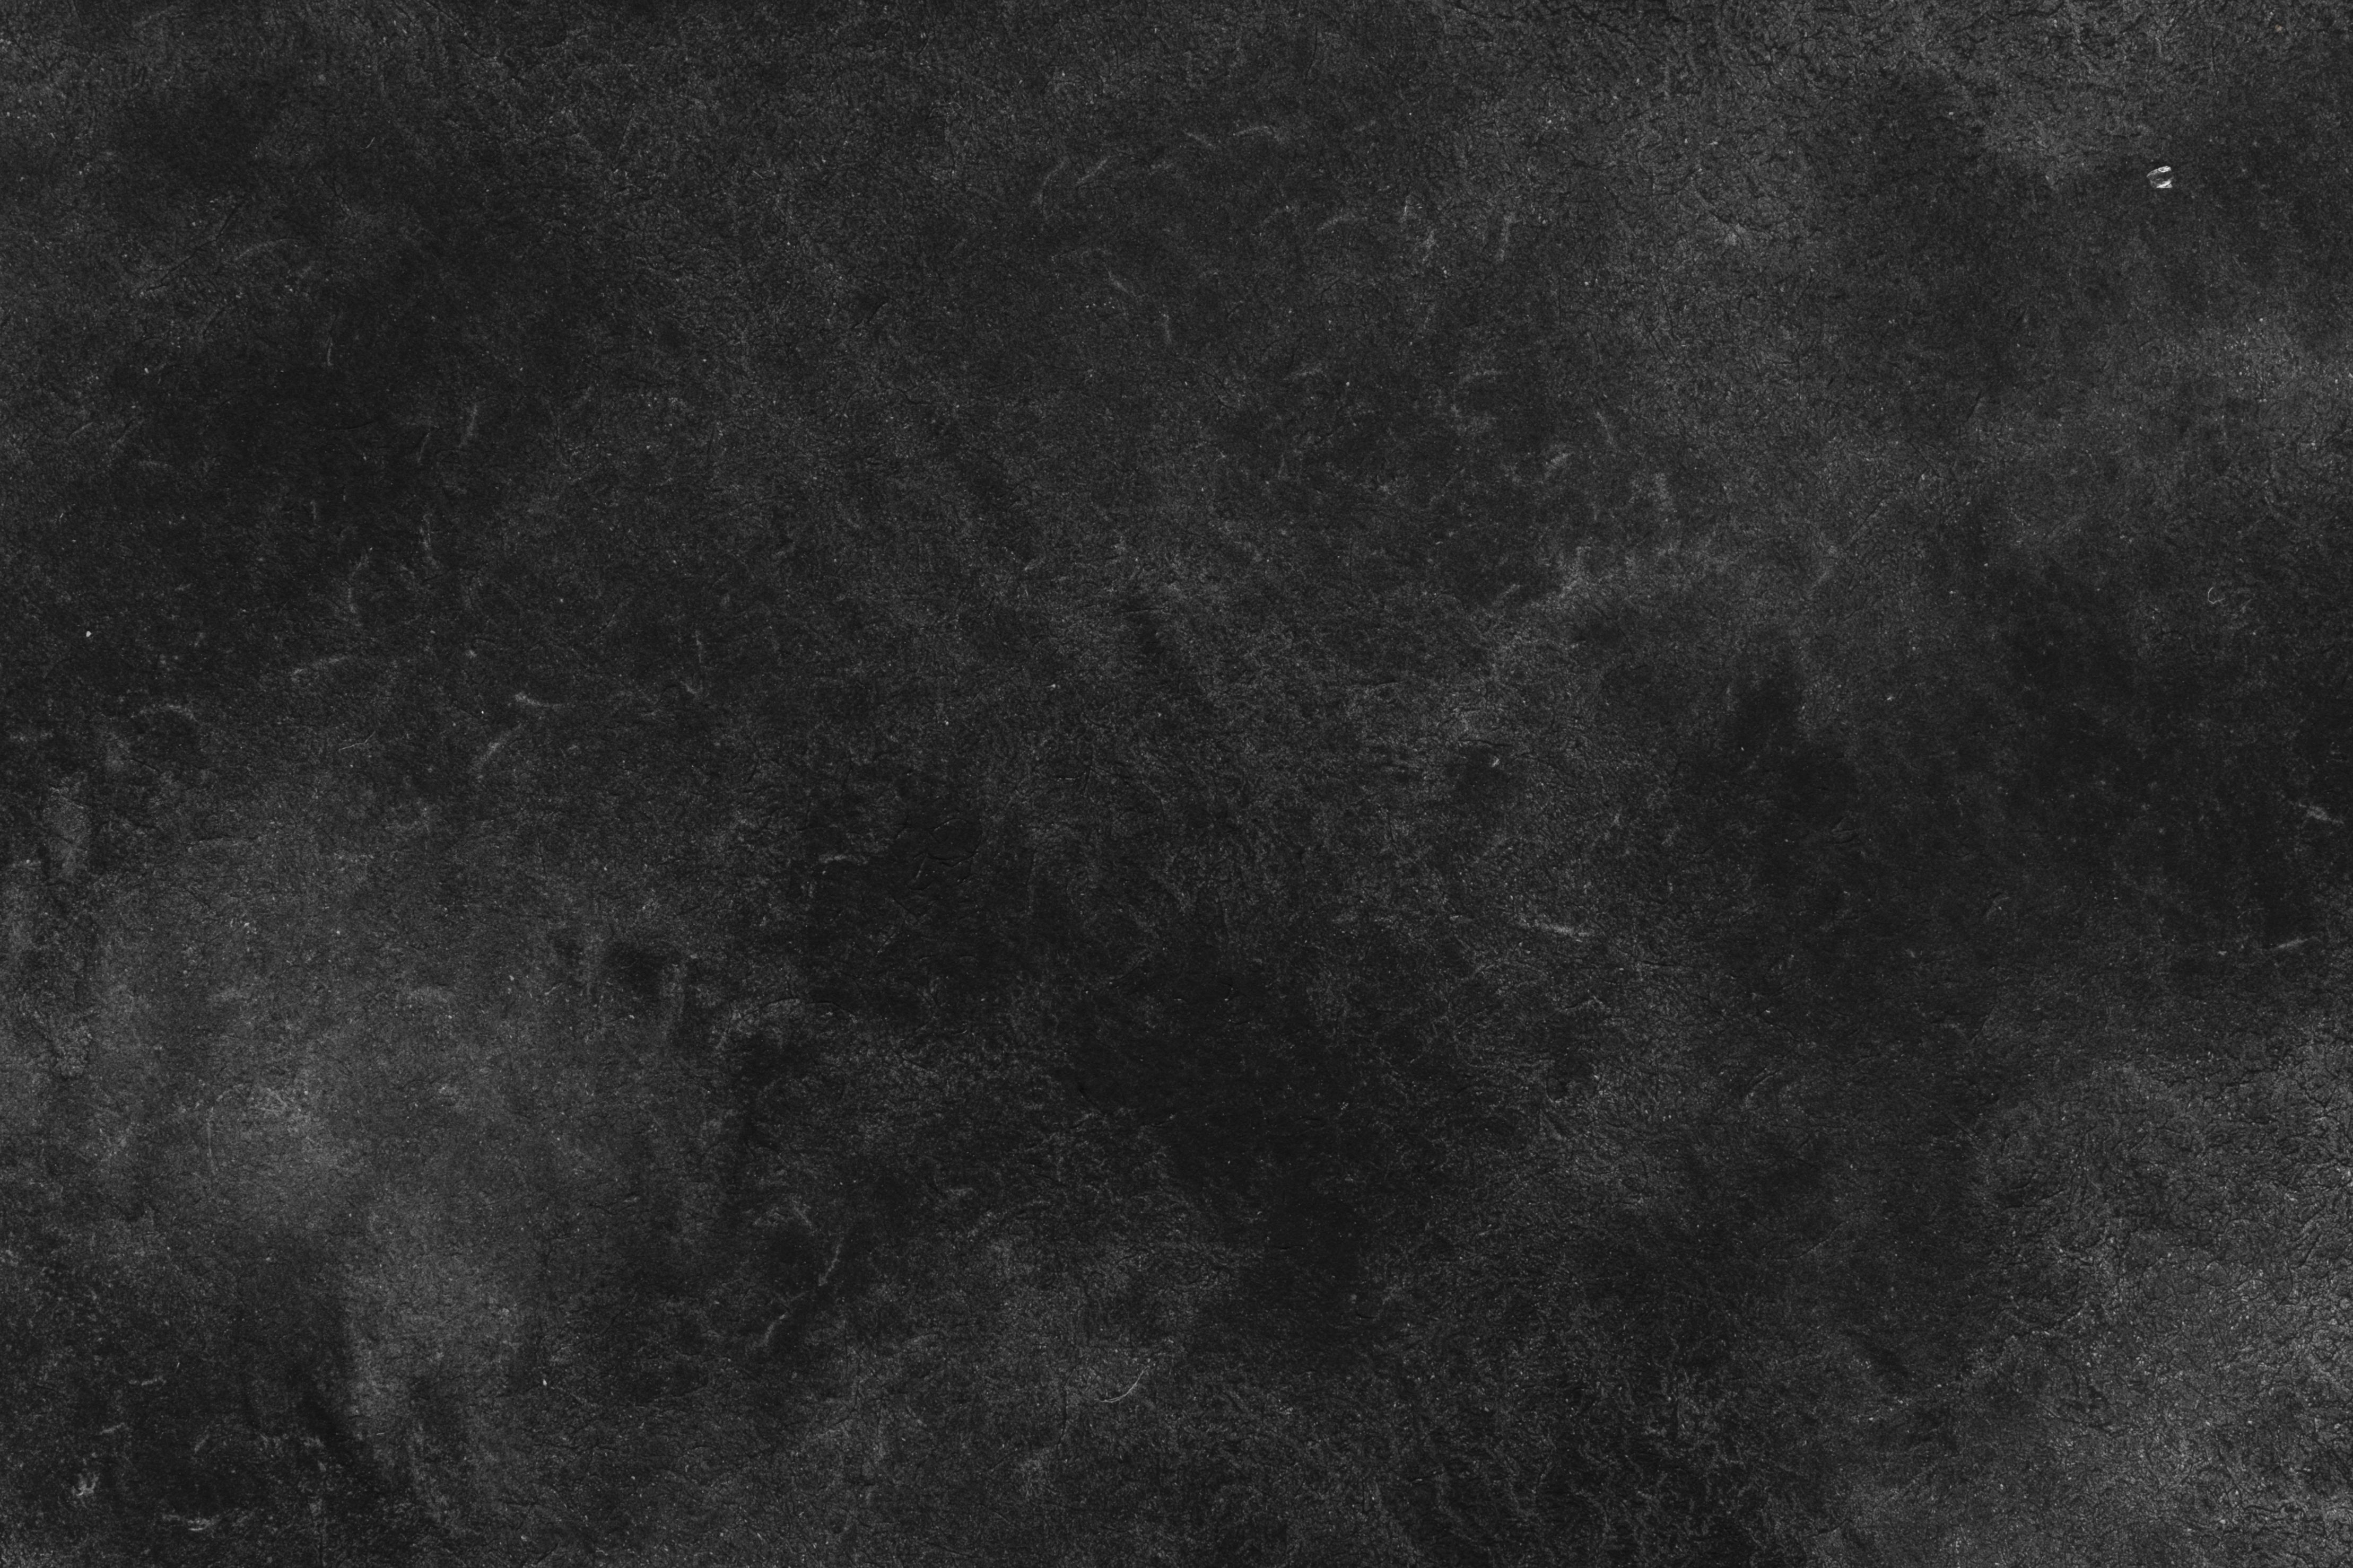 Stock Photography Texture Background Wallpaper Black Marble Background Texture Photography Black Texture Background Find images of black background texture. stock photography texture background